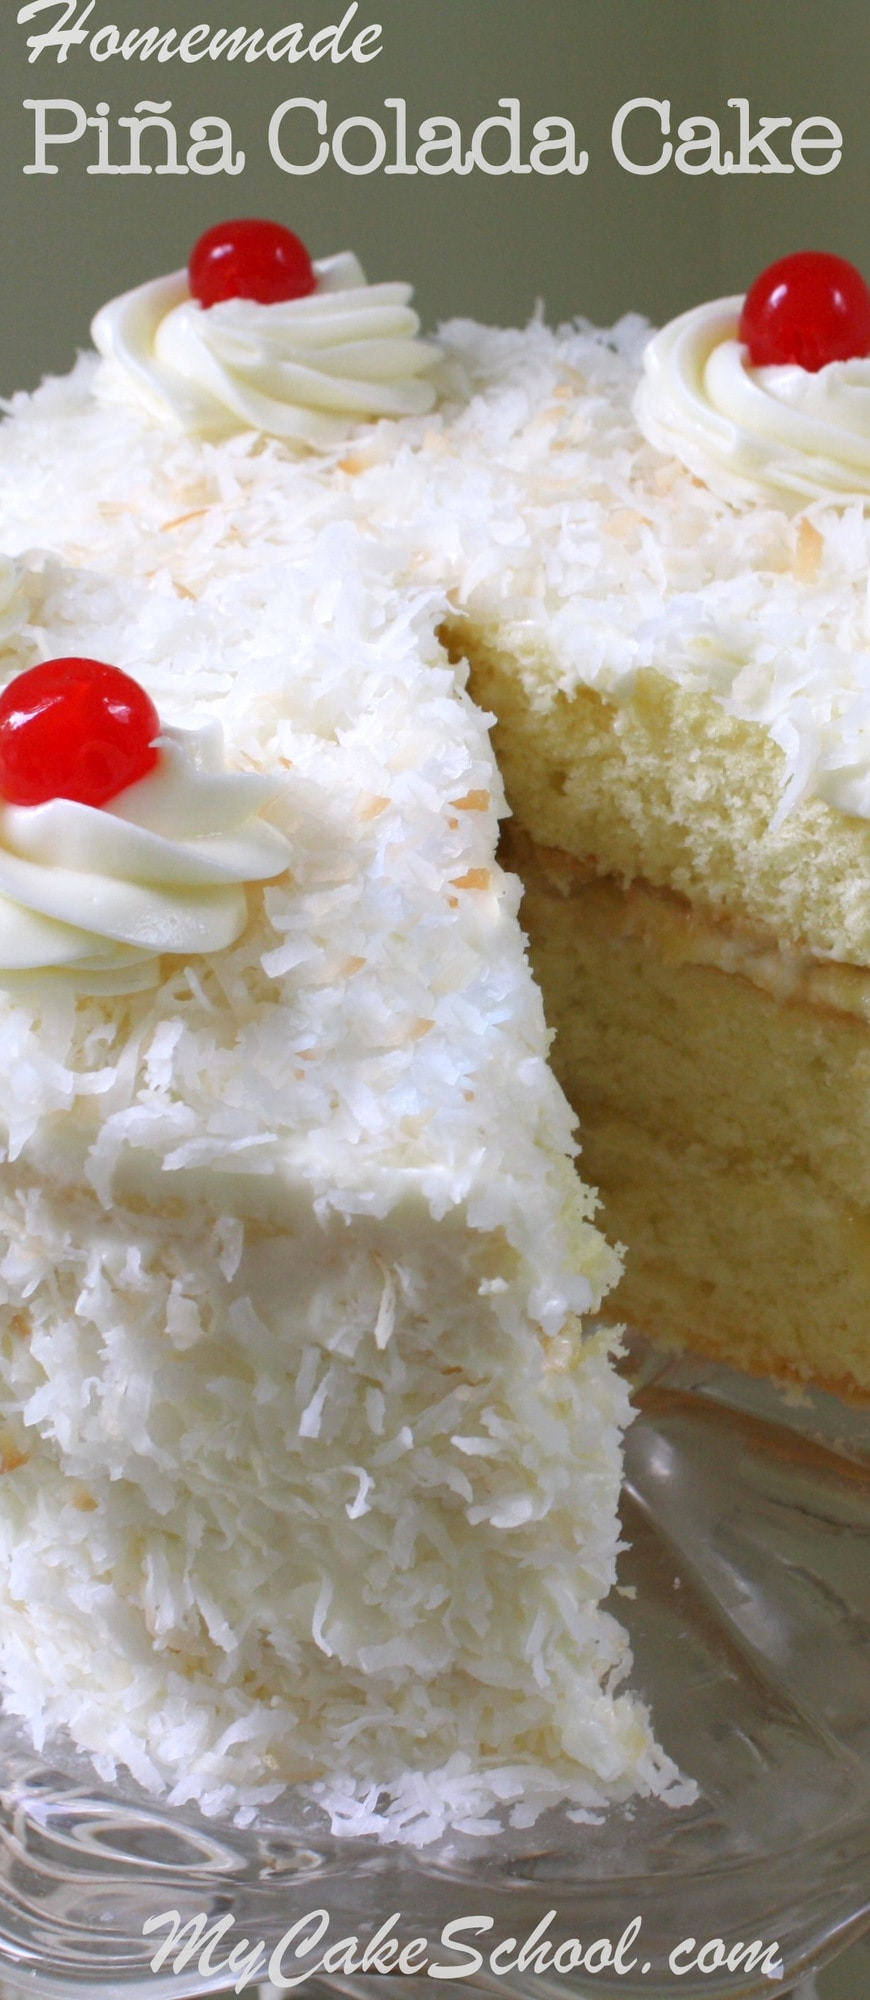 This AMAZING homemade Piña Colada Cake recipe is perfect for summer gatherings! Moist coconut cake layers with crushed pineapple filling, a hint of rum, and a flavorful Piña Colada Cream Cheese Frosting! MyCakeSchool.com.